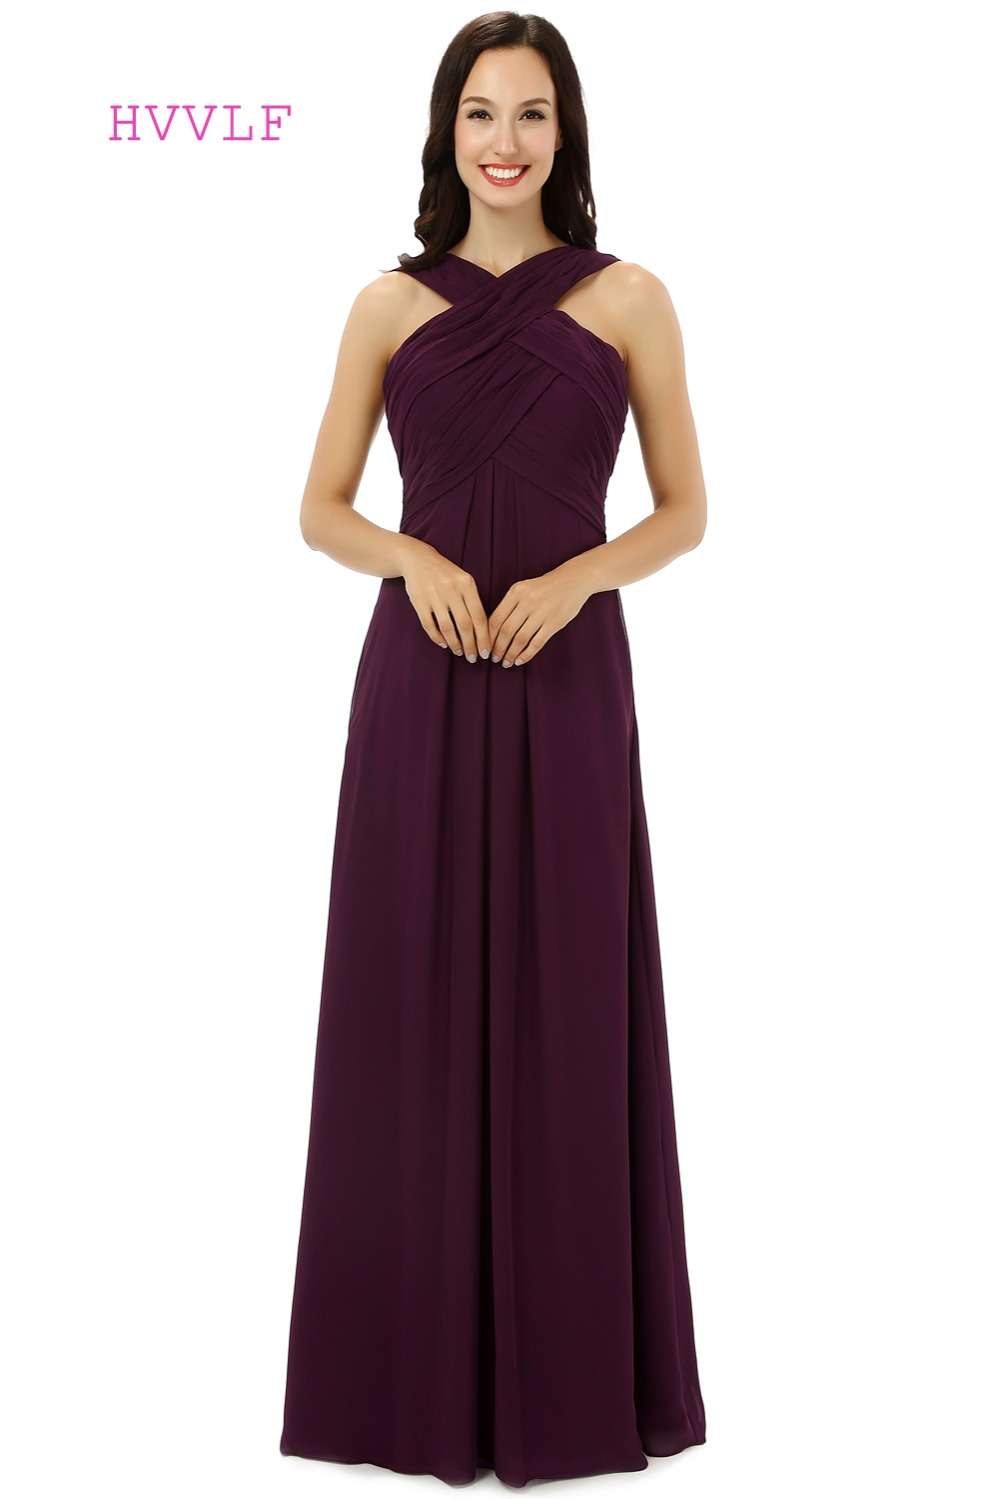 HVVLF 2019 Cheap   Bridesmaid     Dresses   Under 50 A-line Halter Floor Length Purple Chiffon Wedding Party   Dresses